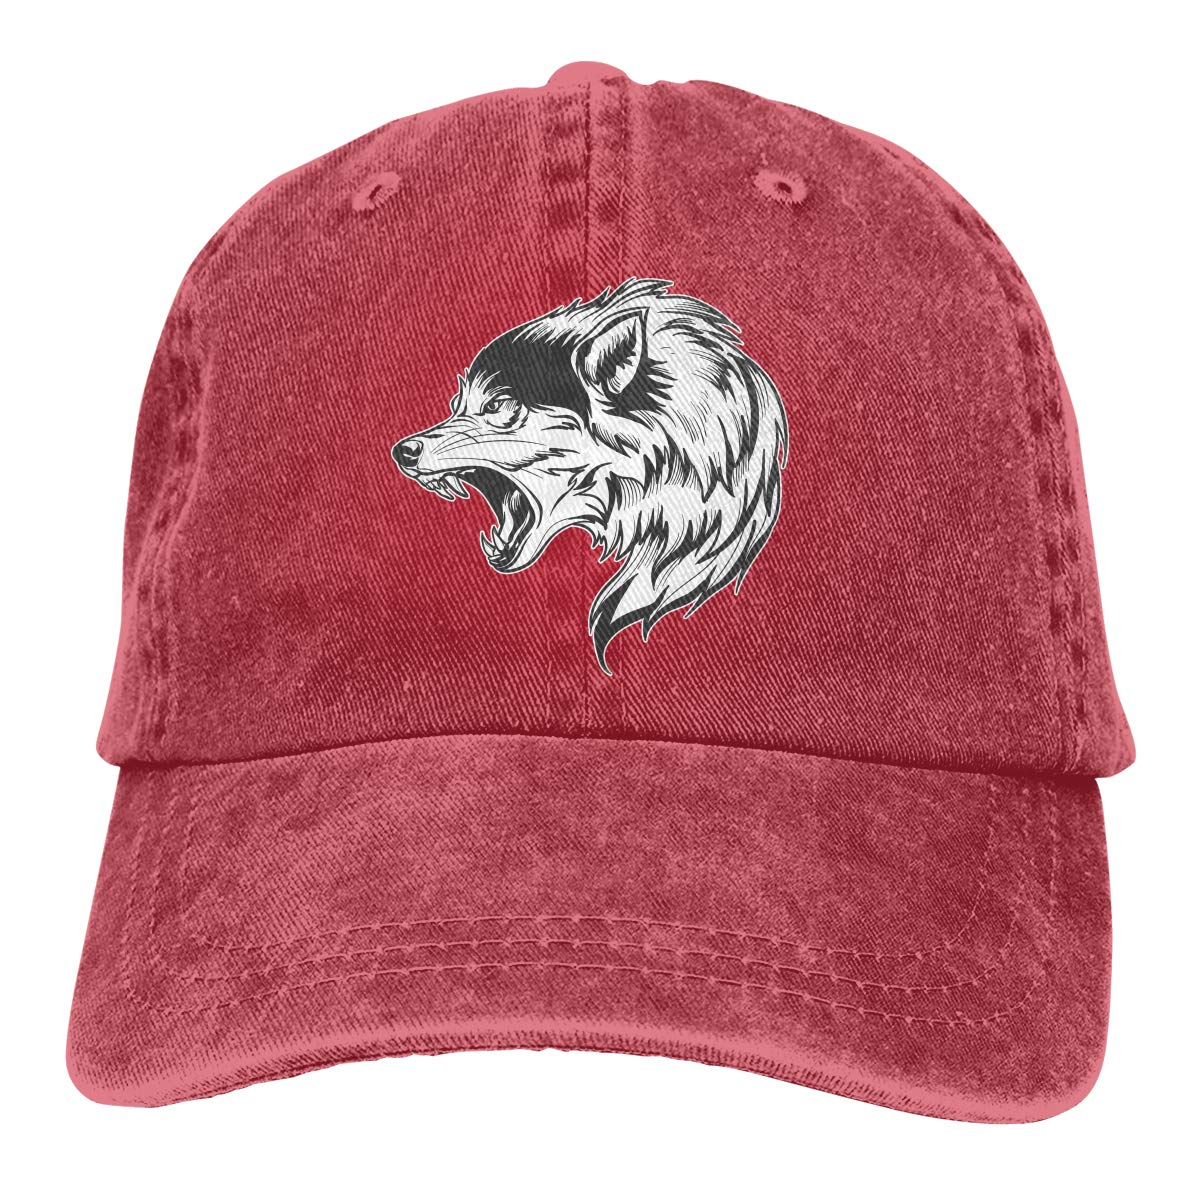 a99960970d6 Wolf Head Unisex Vintage Washed Cap Fashion Adjustable Dad Hats at Amazon  Men s Clothing store